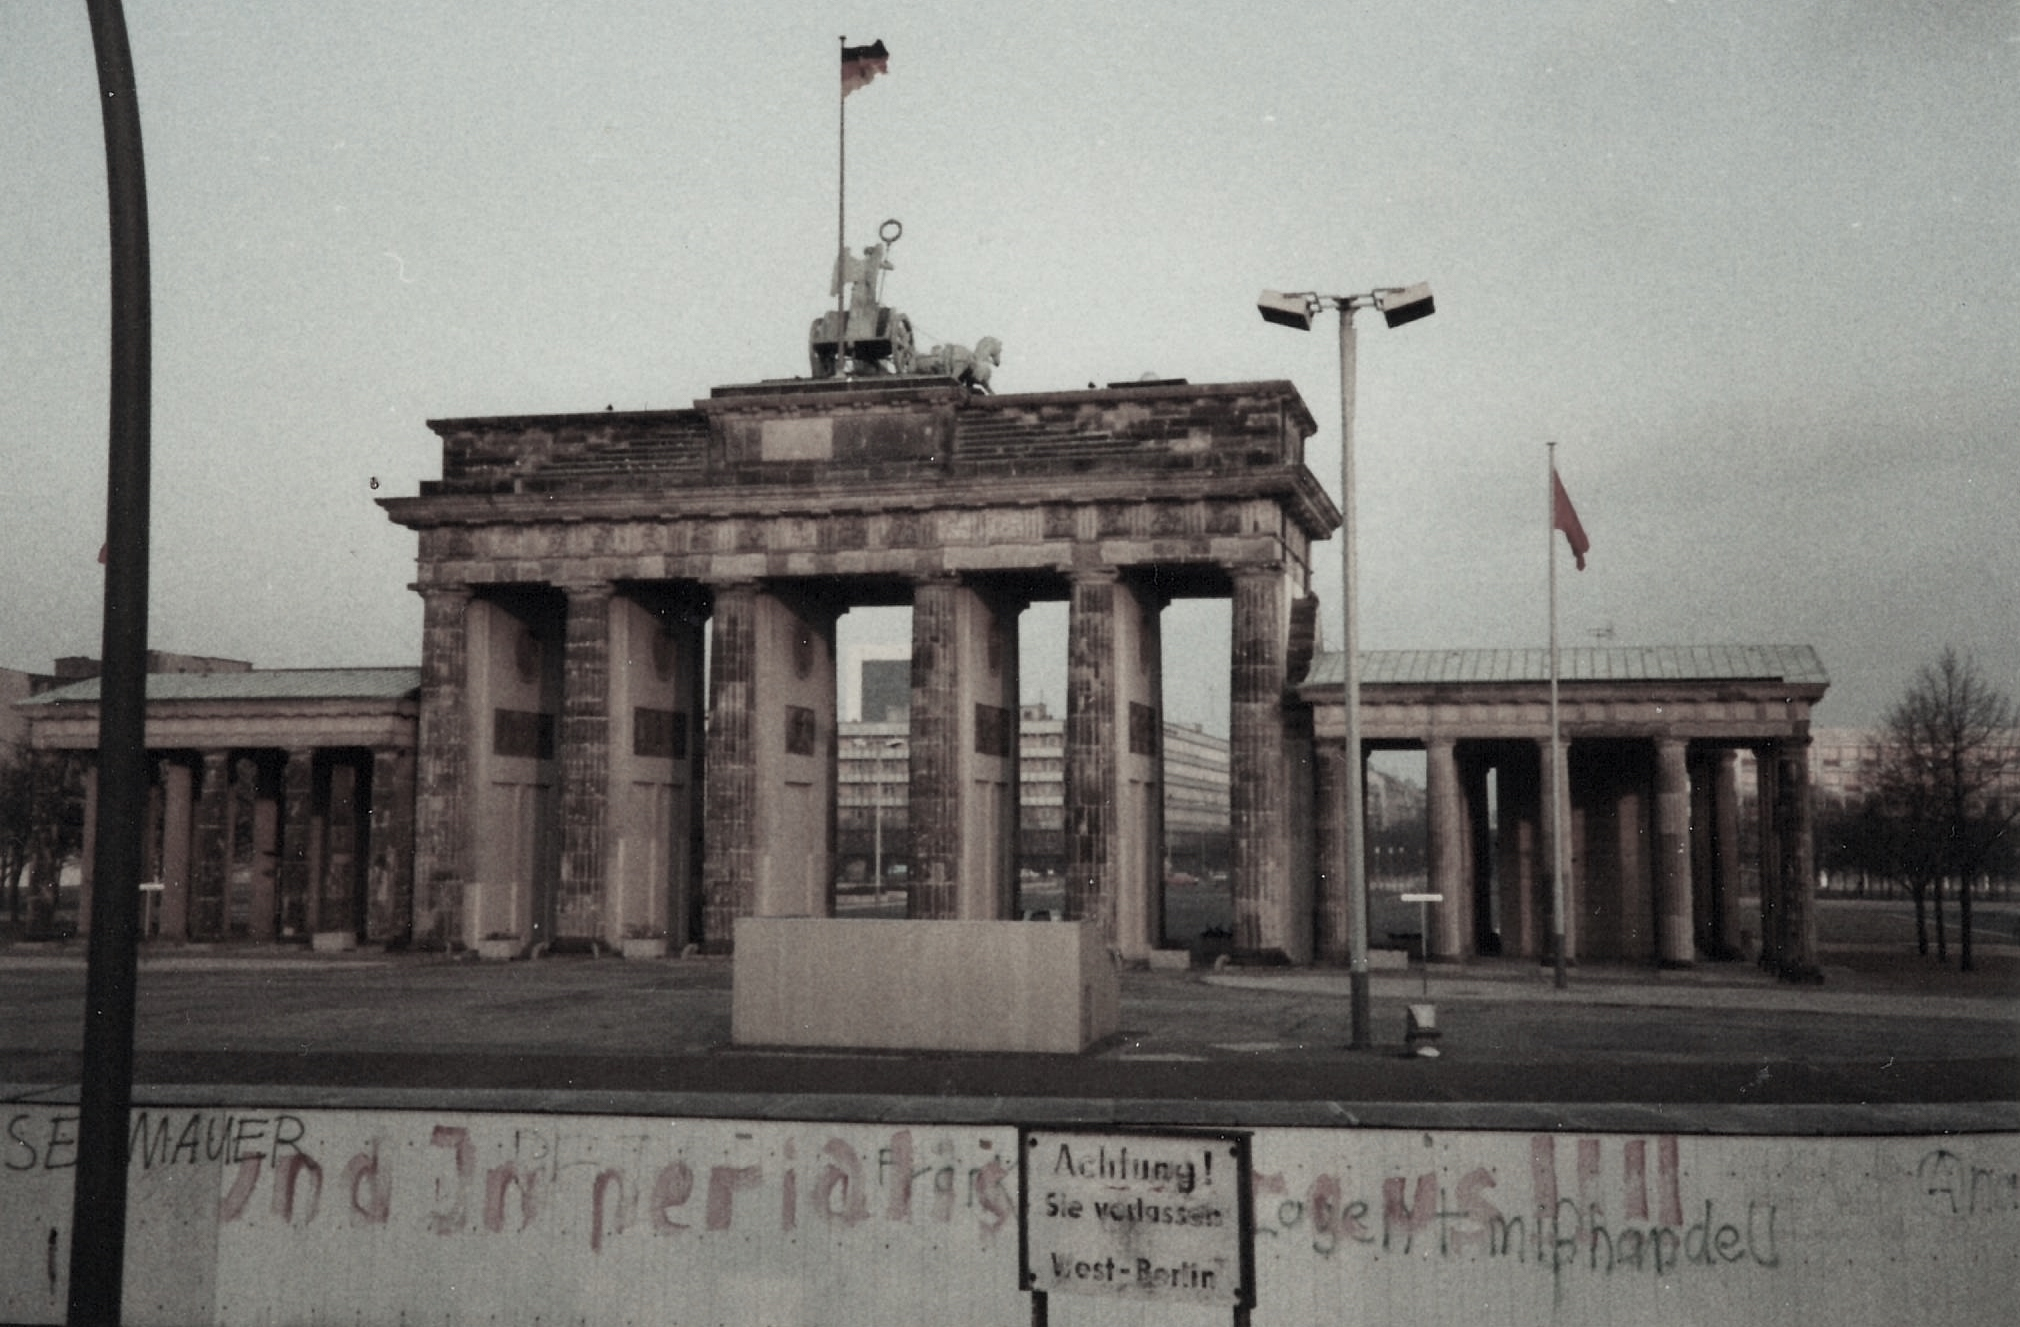 A picture of the Berlin Wall at the Brandenburg Gate from 1985